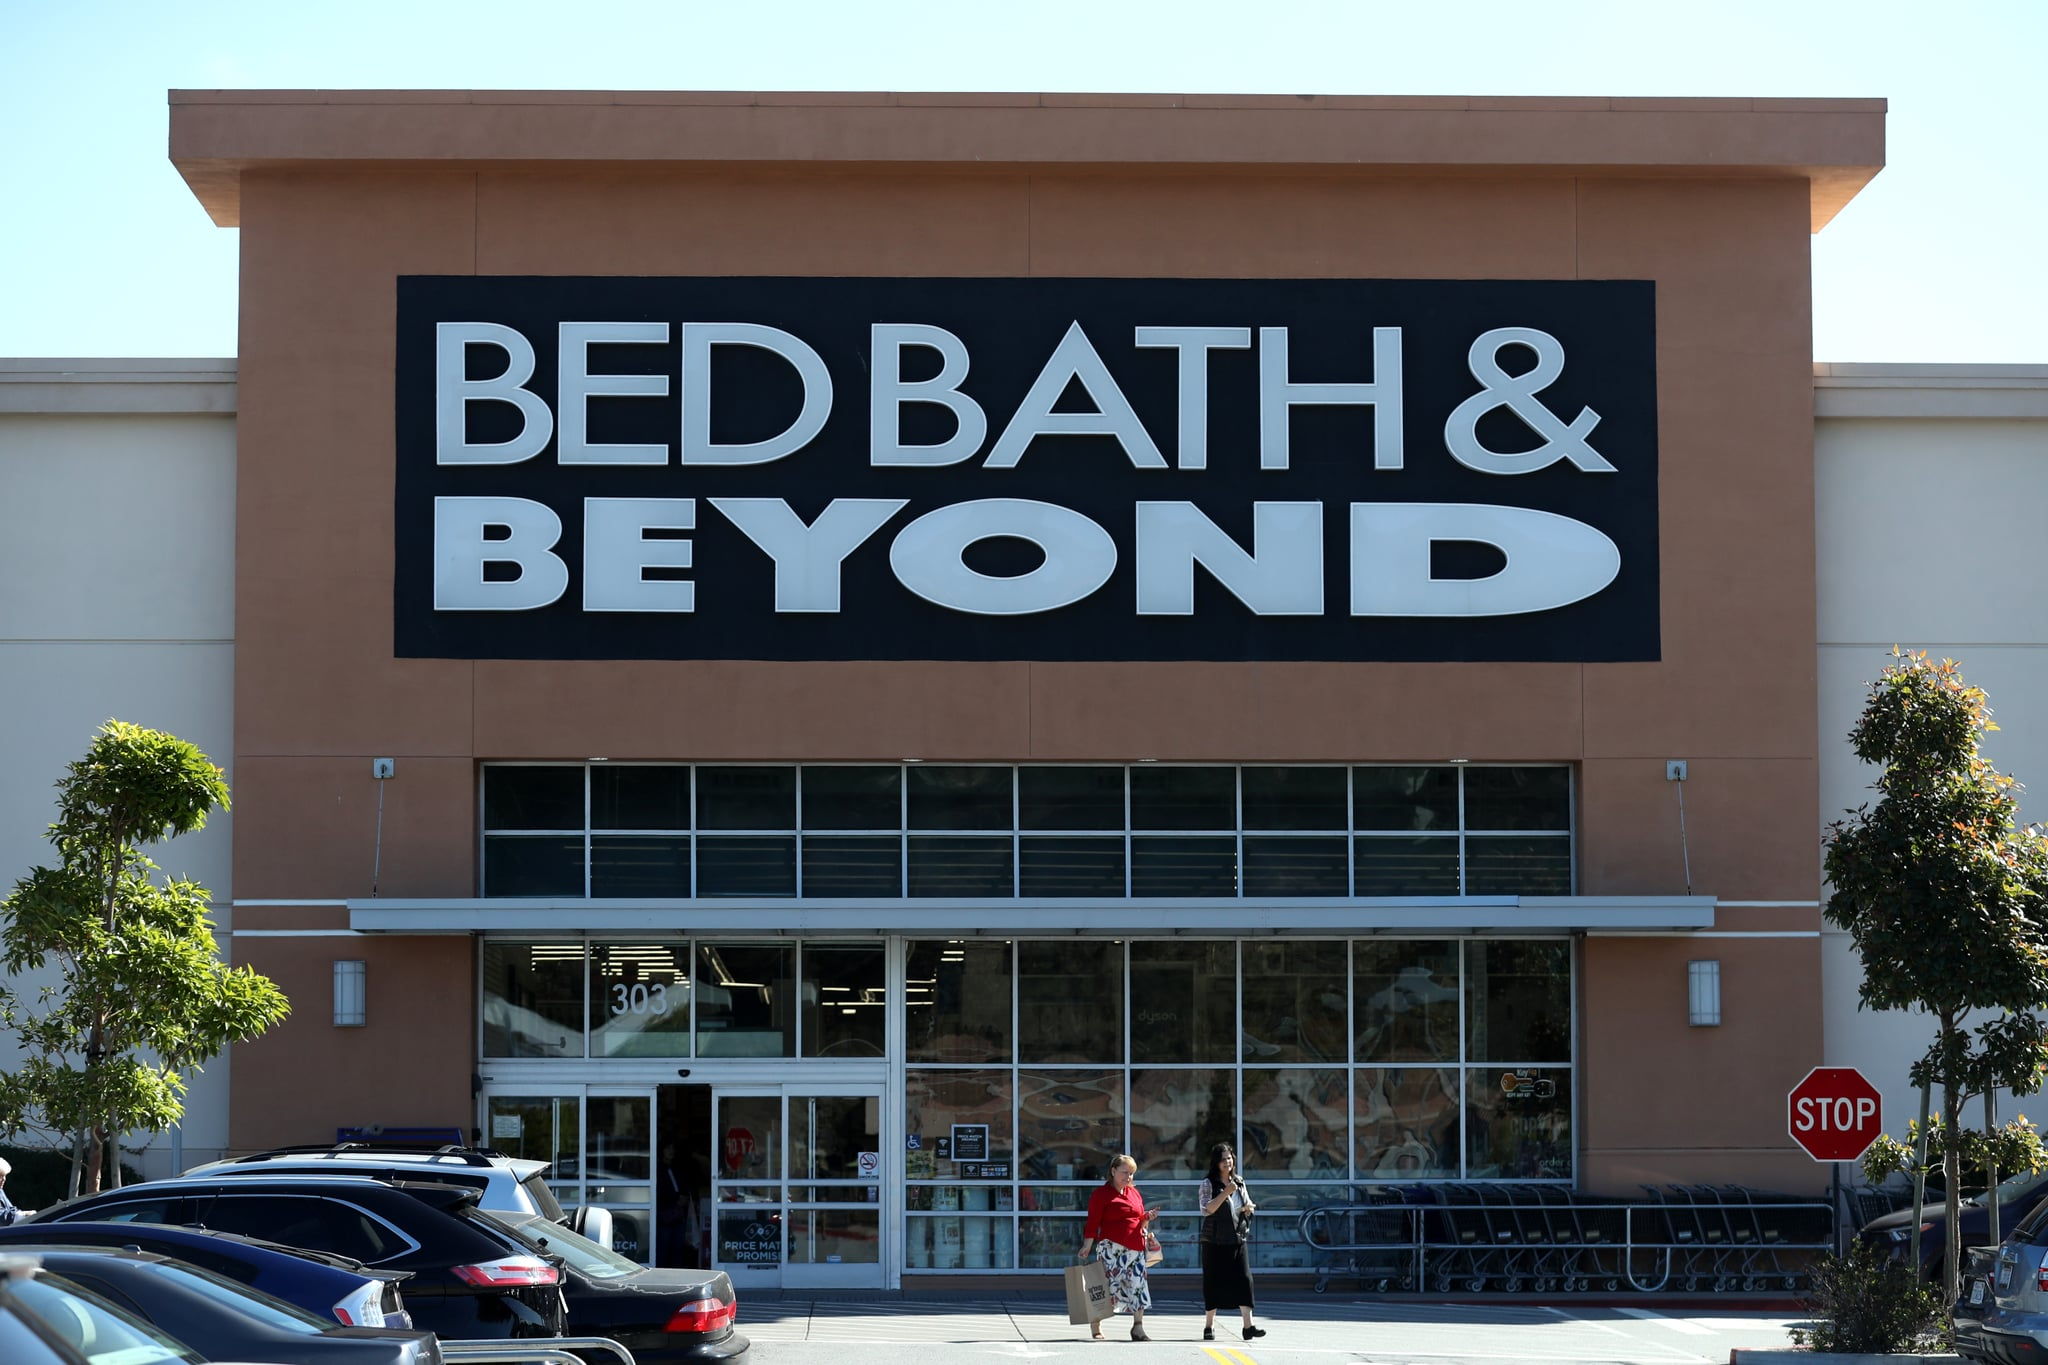 DALY CITY, CALIFORNIA - OCTOBER 03: A view of a Bed Bath and Beyond store on October 03, 2019 in Daly City, California. New Jersey based home goods retailer Bed Bath and Beyond announced that it plans to close 60 of its stores in the fiscal year, 20 more than previously announced in April of this year. (Photo by Justin Sullivan/Getty Images)